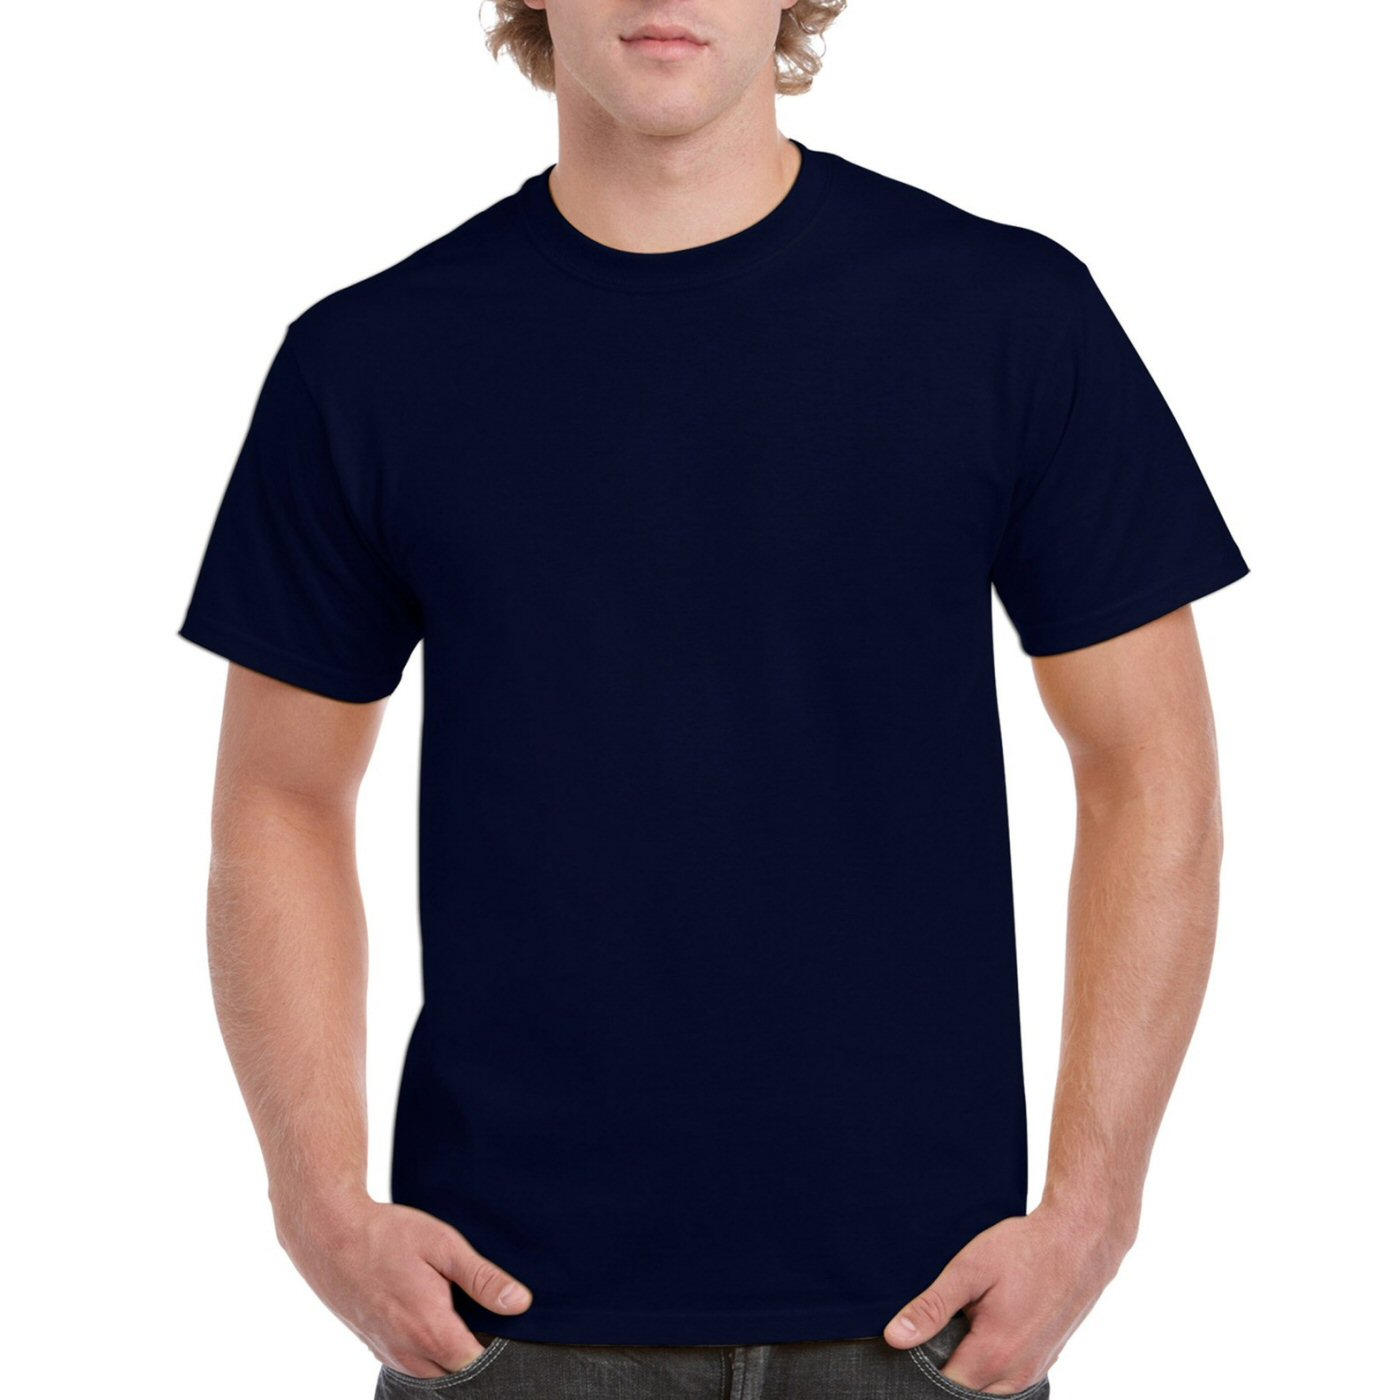 buy blank navy blue t shirt 60 off share discount